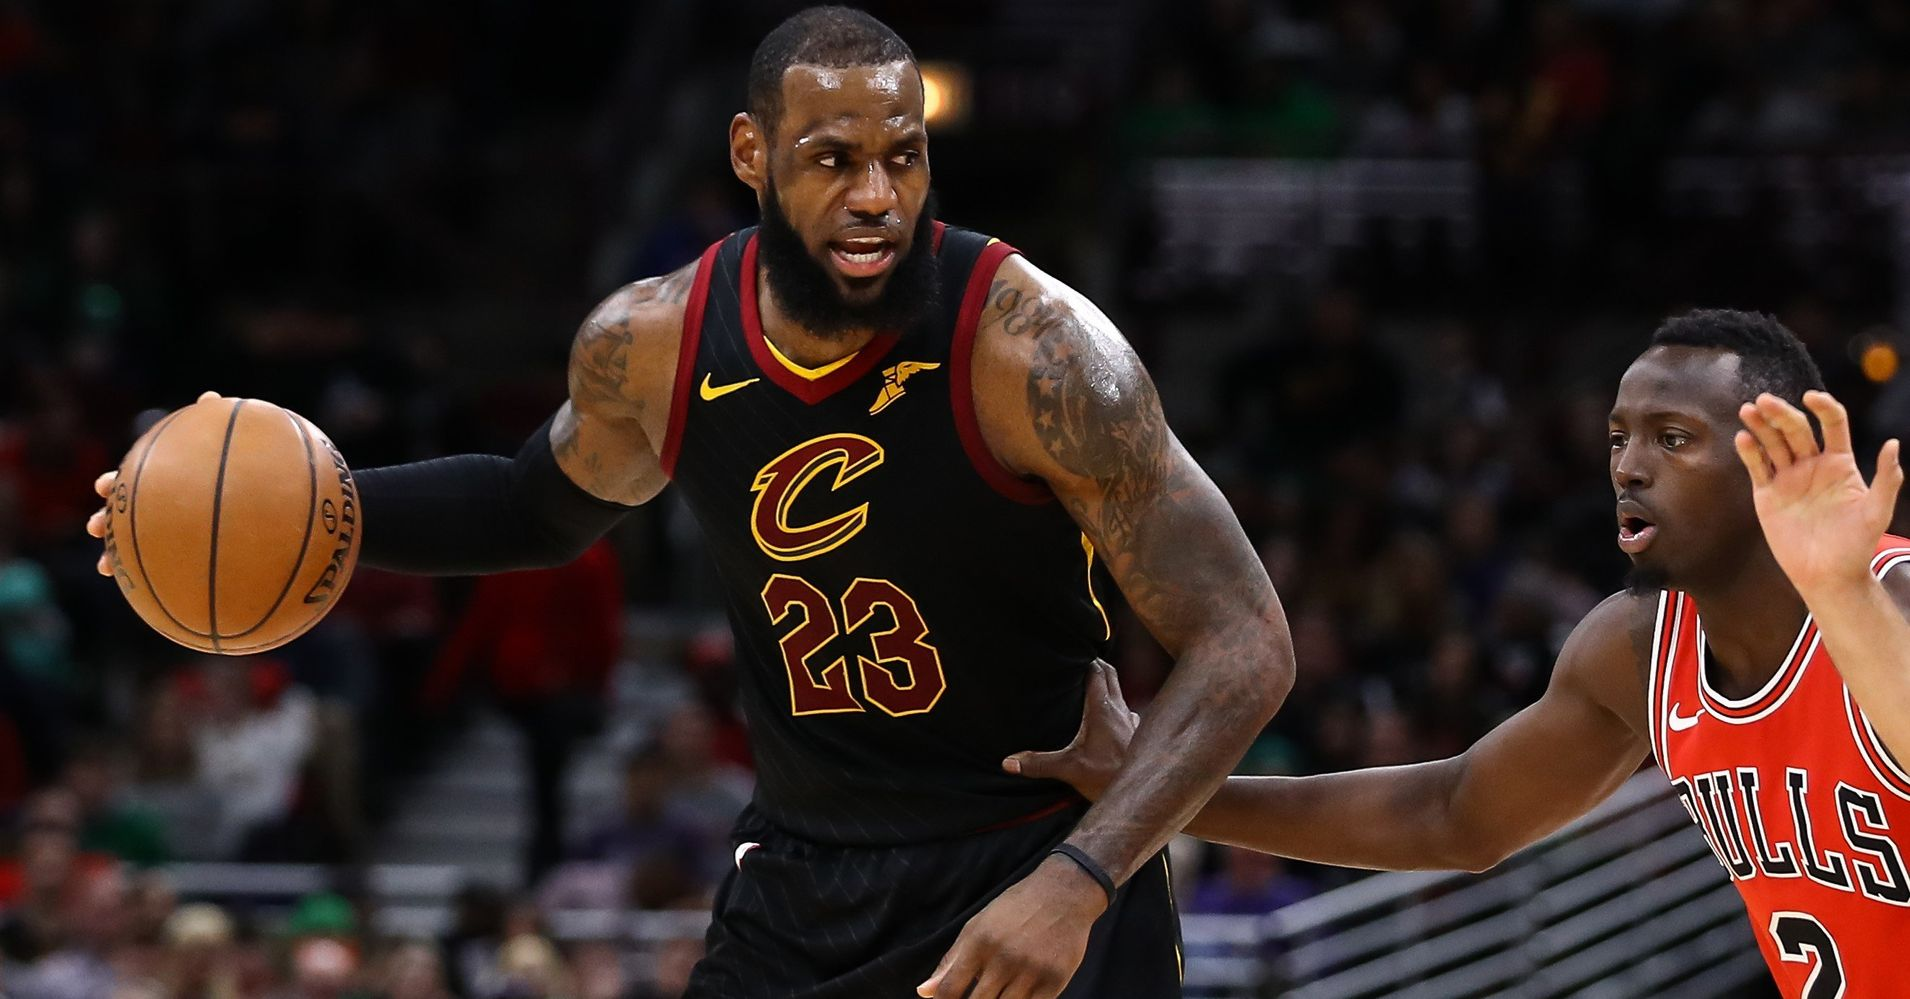 LeBron James Once Gained 7 Pounds In A Single NBA Playoff Game